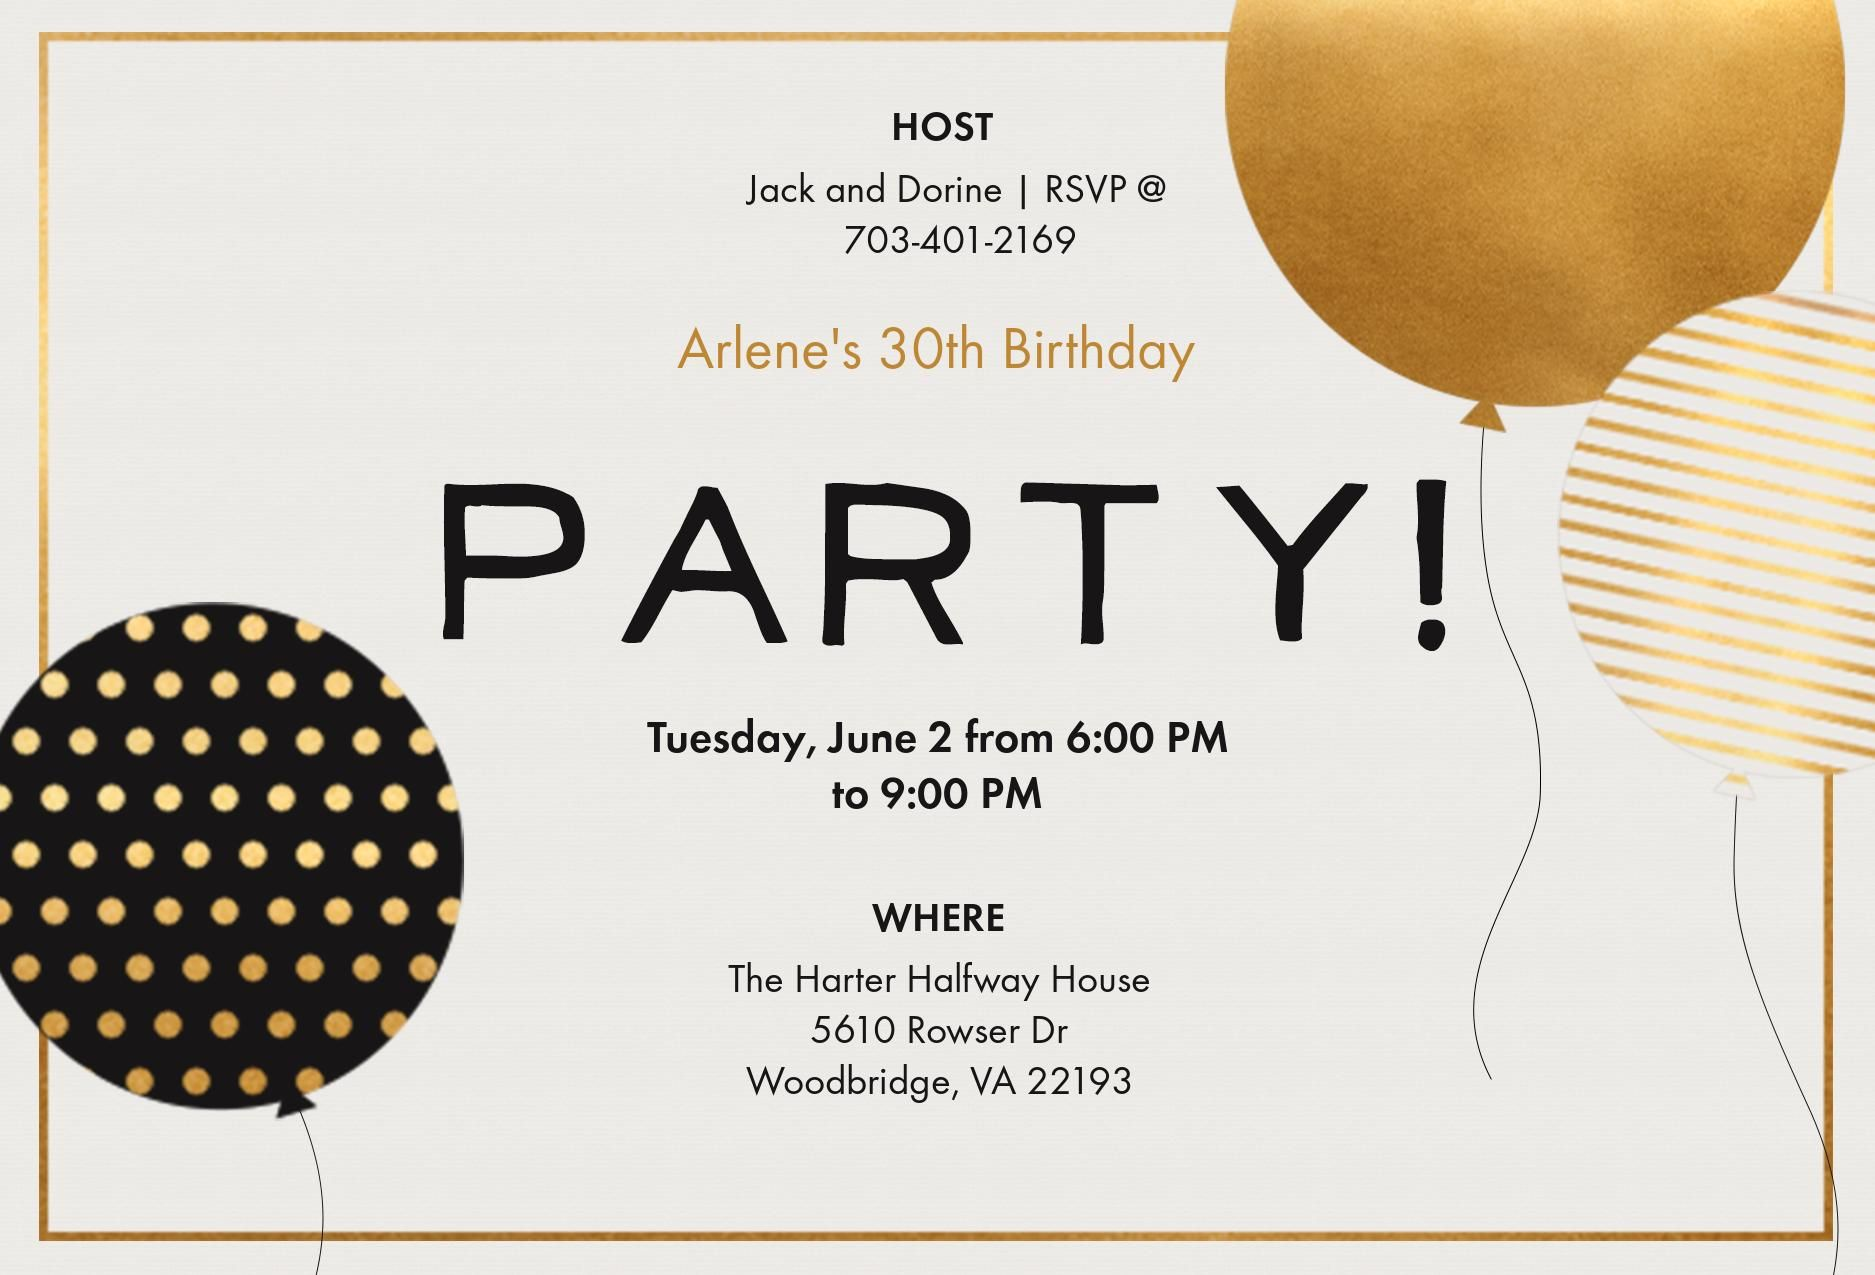 Invitations Free Ecards And Party Planning Ideas From Evite Online Invitations Invitations Free Ecards